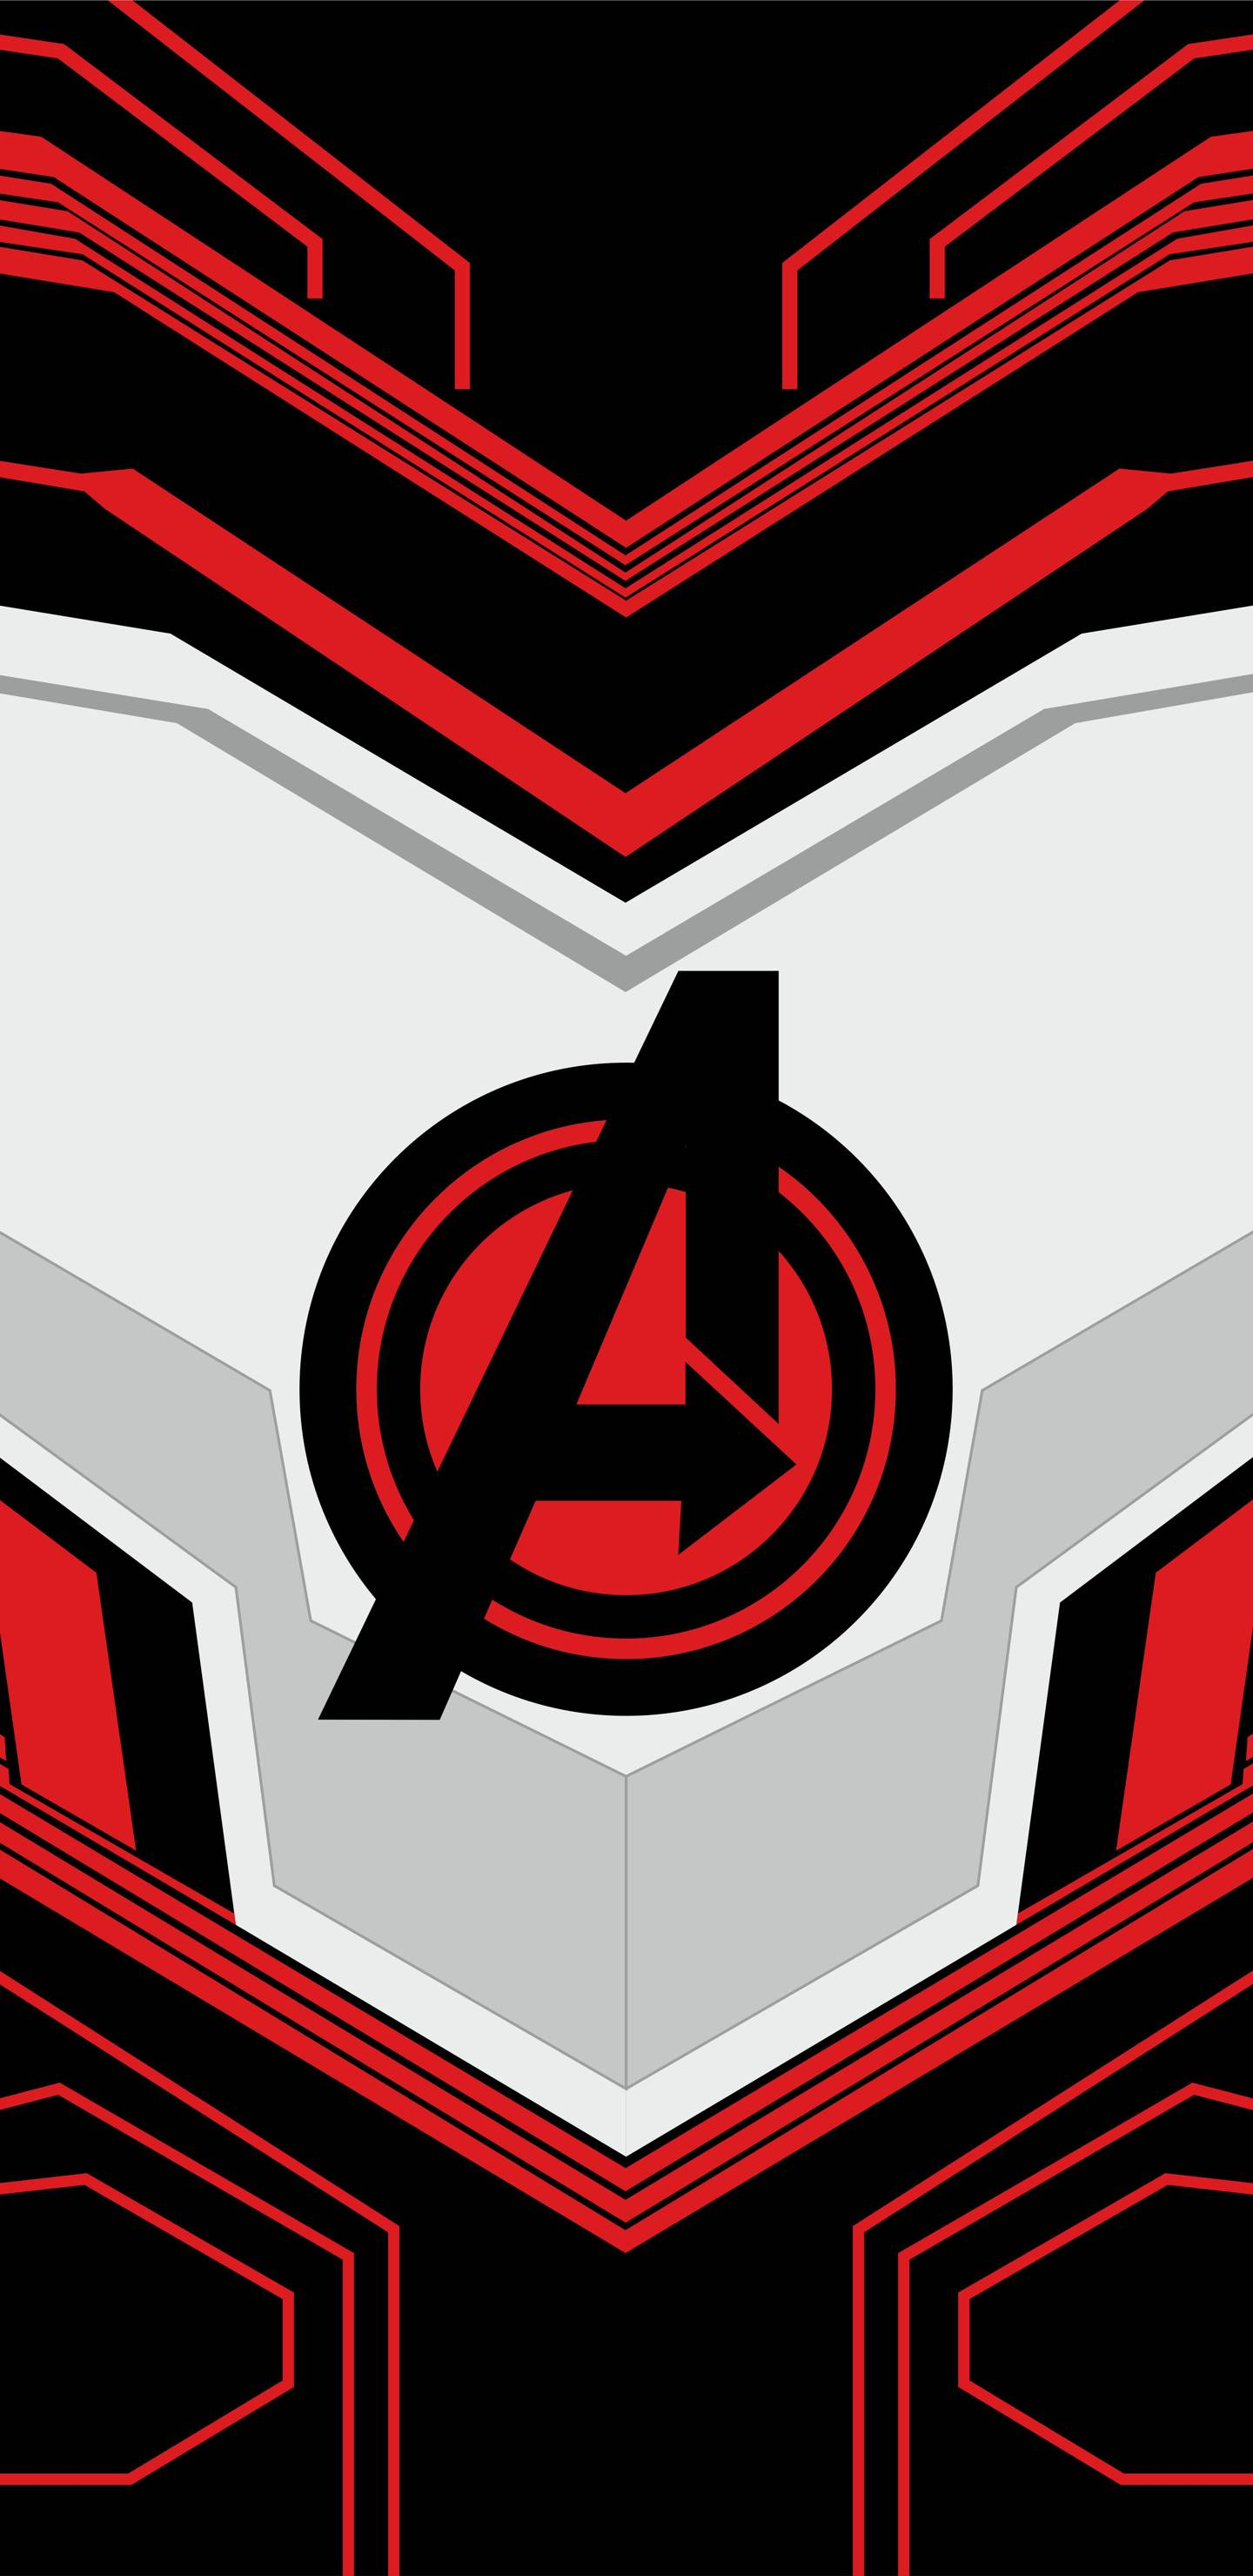 Avengers Theme iPhone Wallpaper